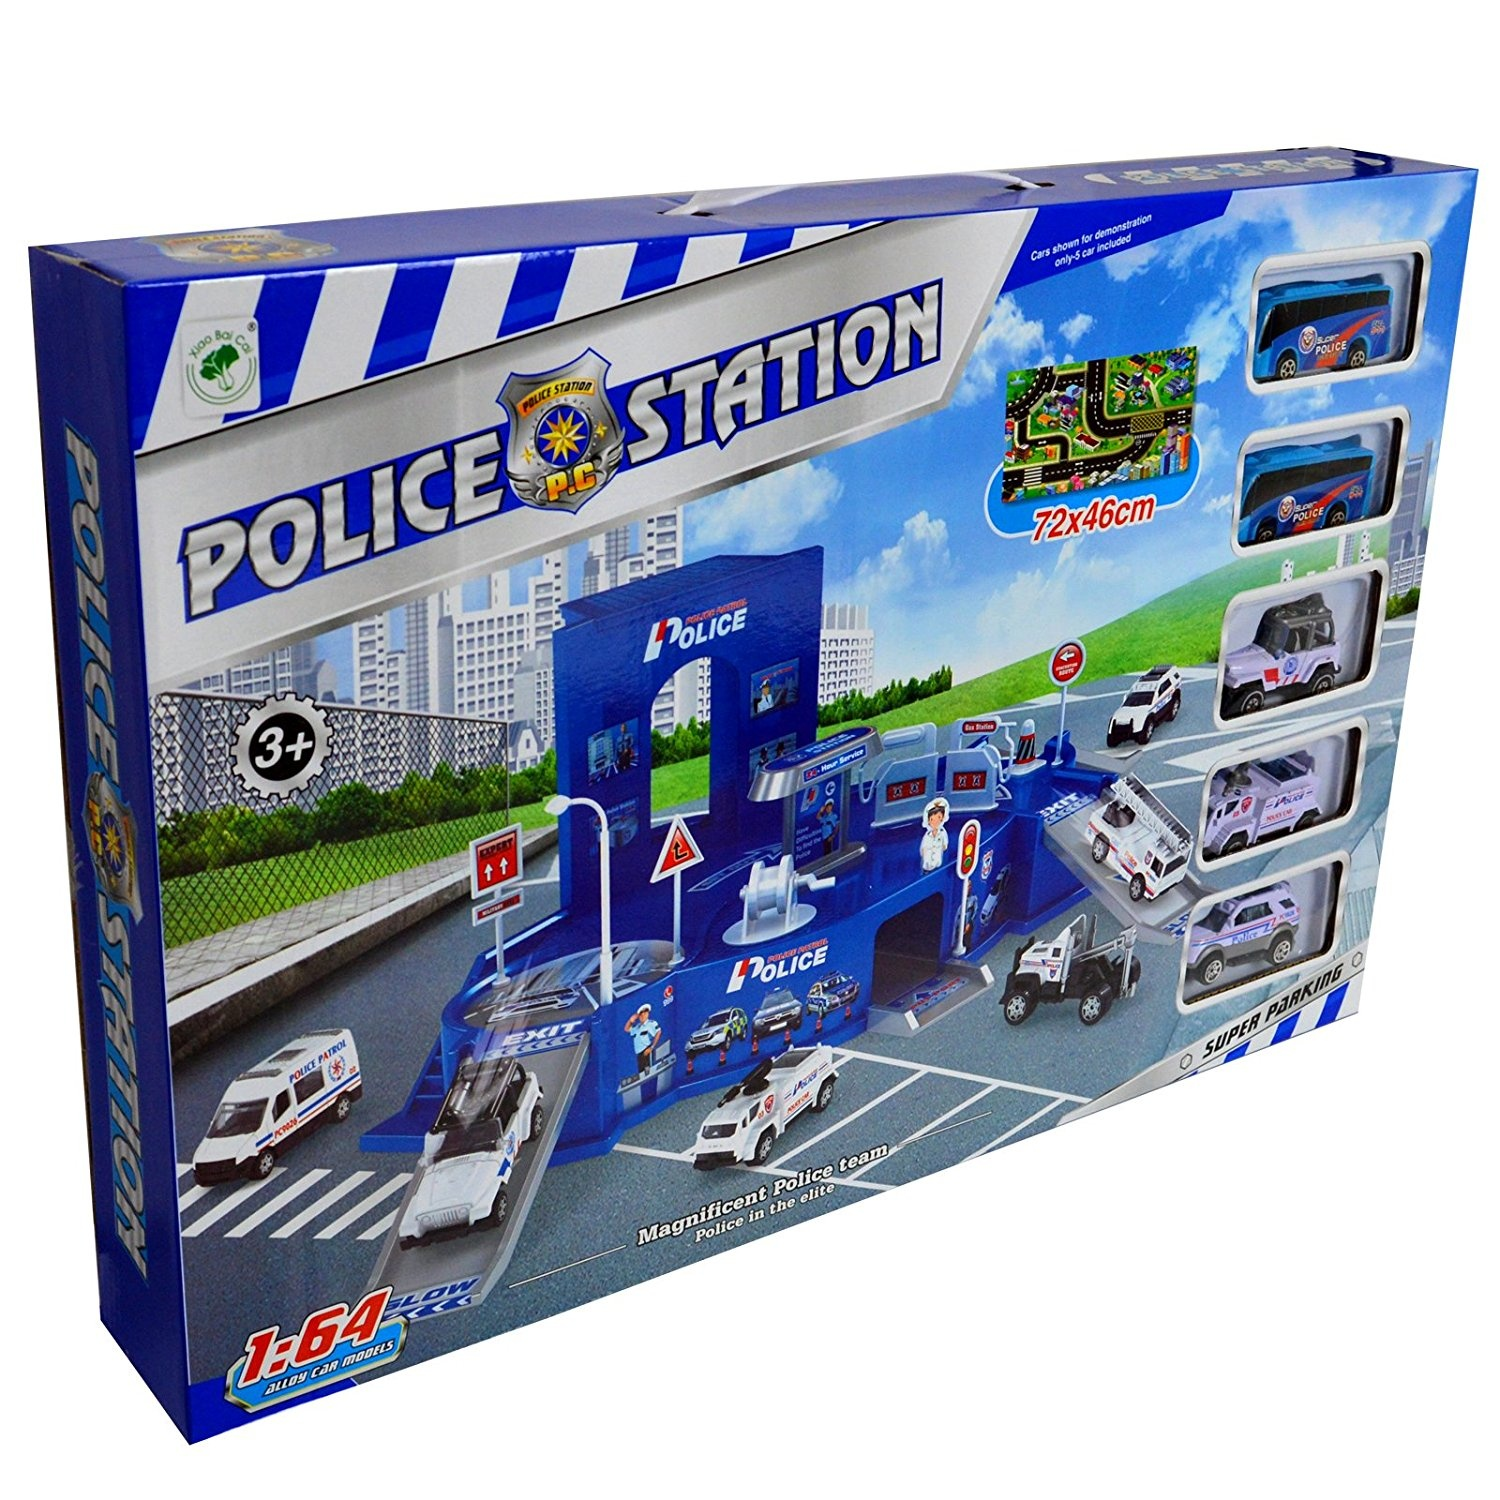 Toy Police Set Toys Toys Buy Online From Fishpondconz